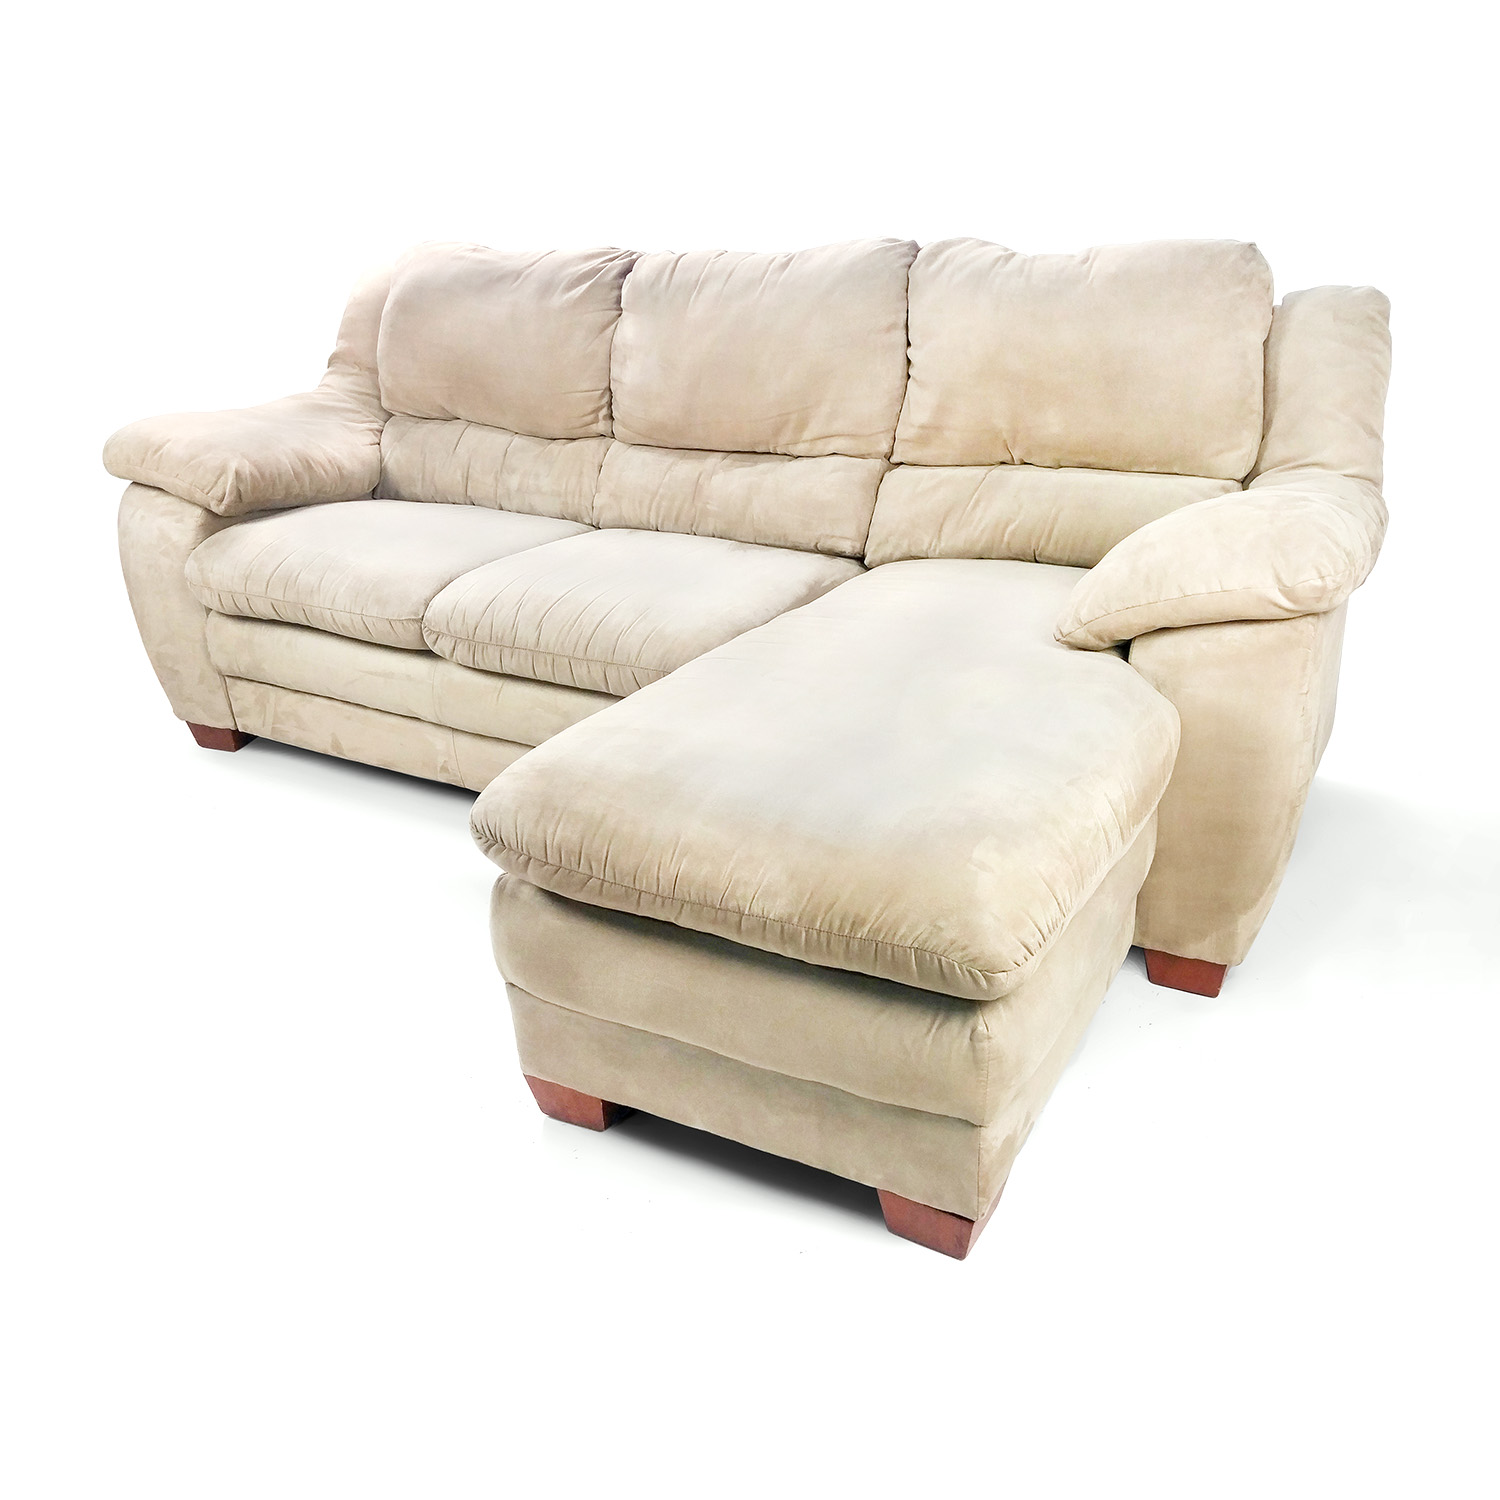 Jennifer convertibles microfiber sectional sofa refil sofa for Microfiber sectional sofa